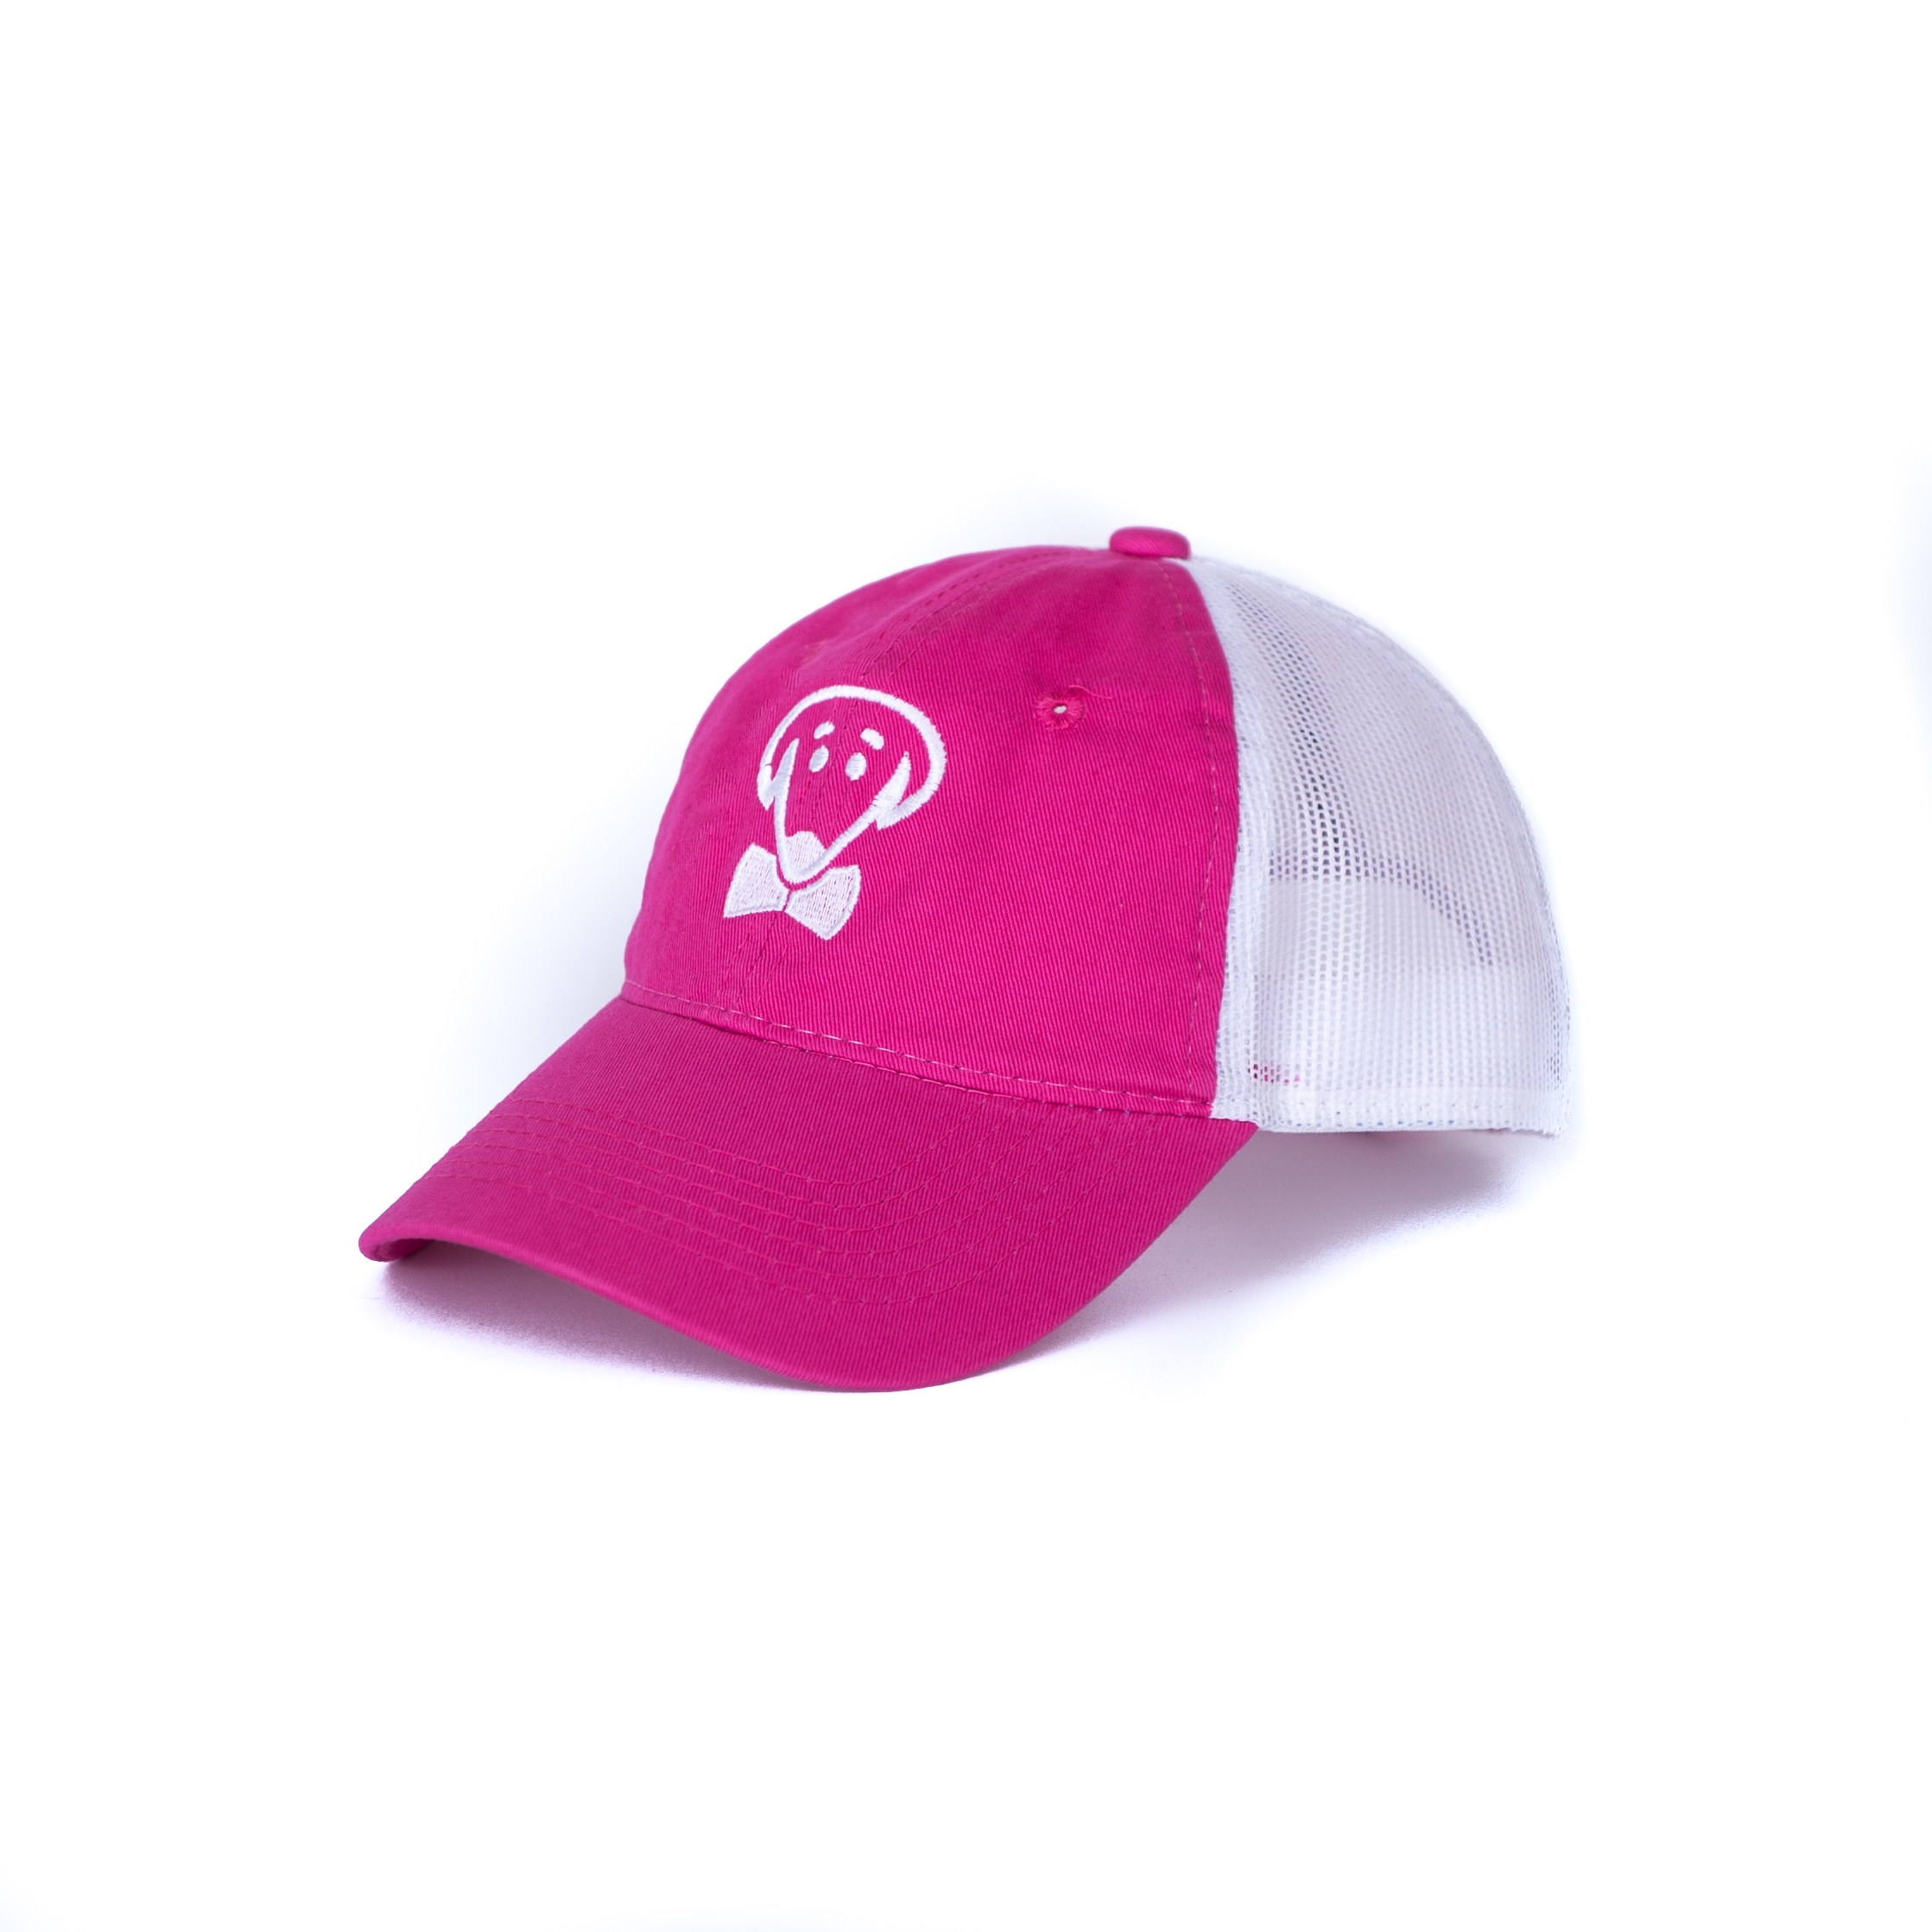 Bow Ties Dog Logo Ladies Baseball Hat-Fuchsia Pink and White